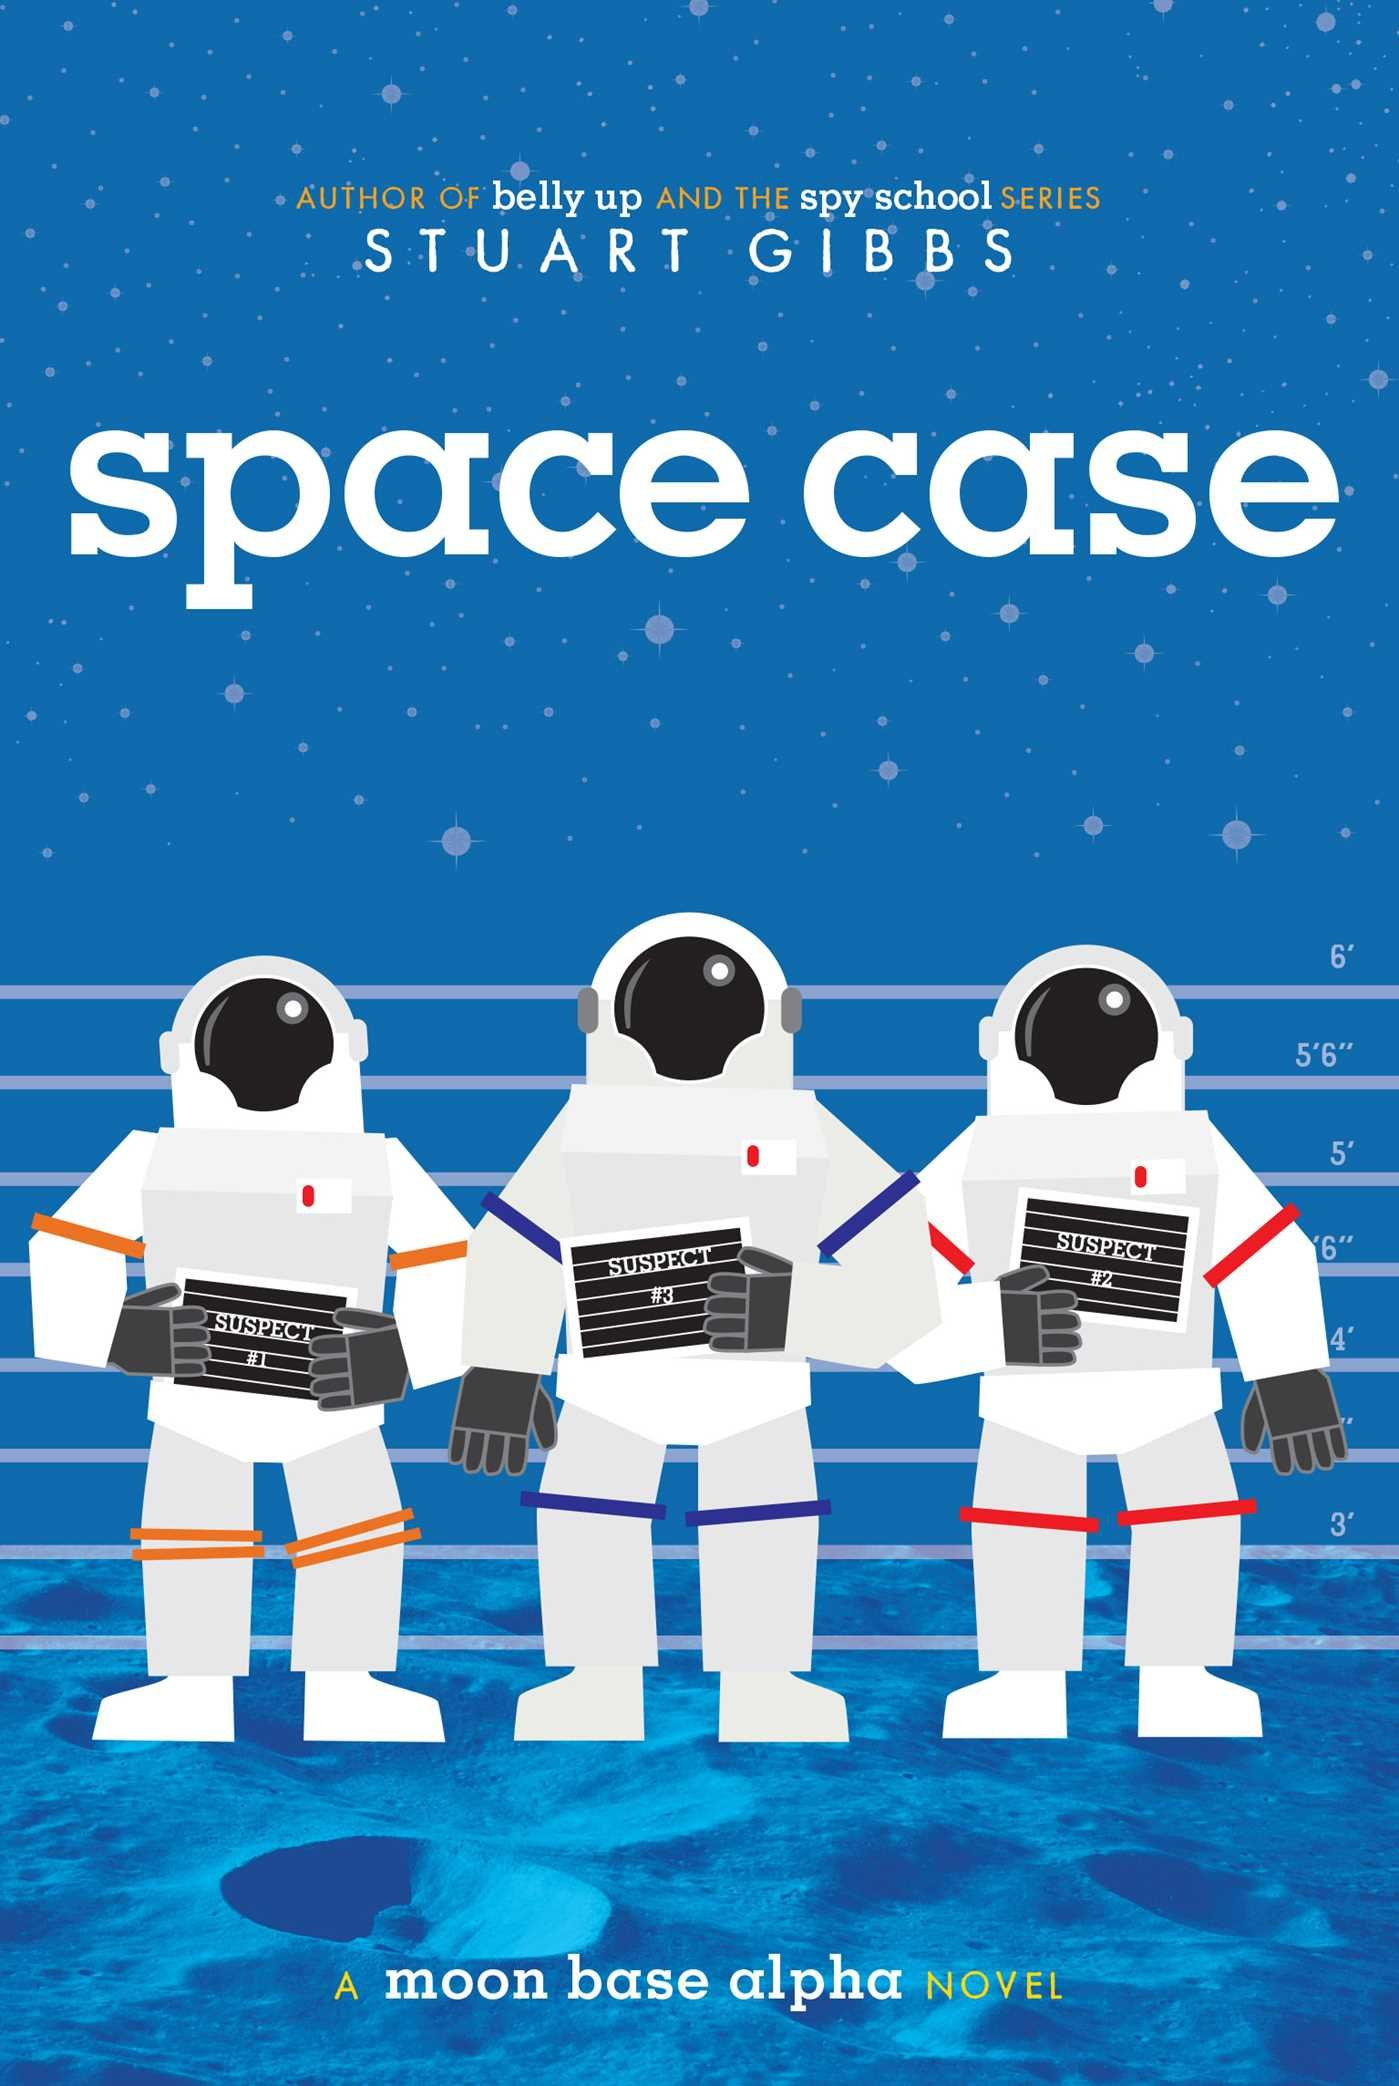 Image result for space case stuart gibbs